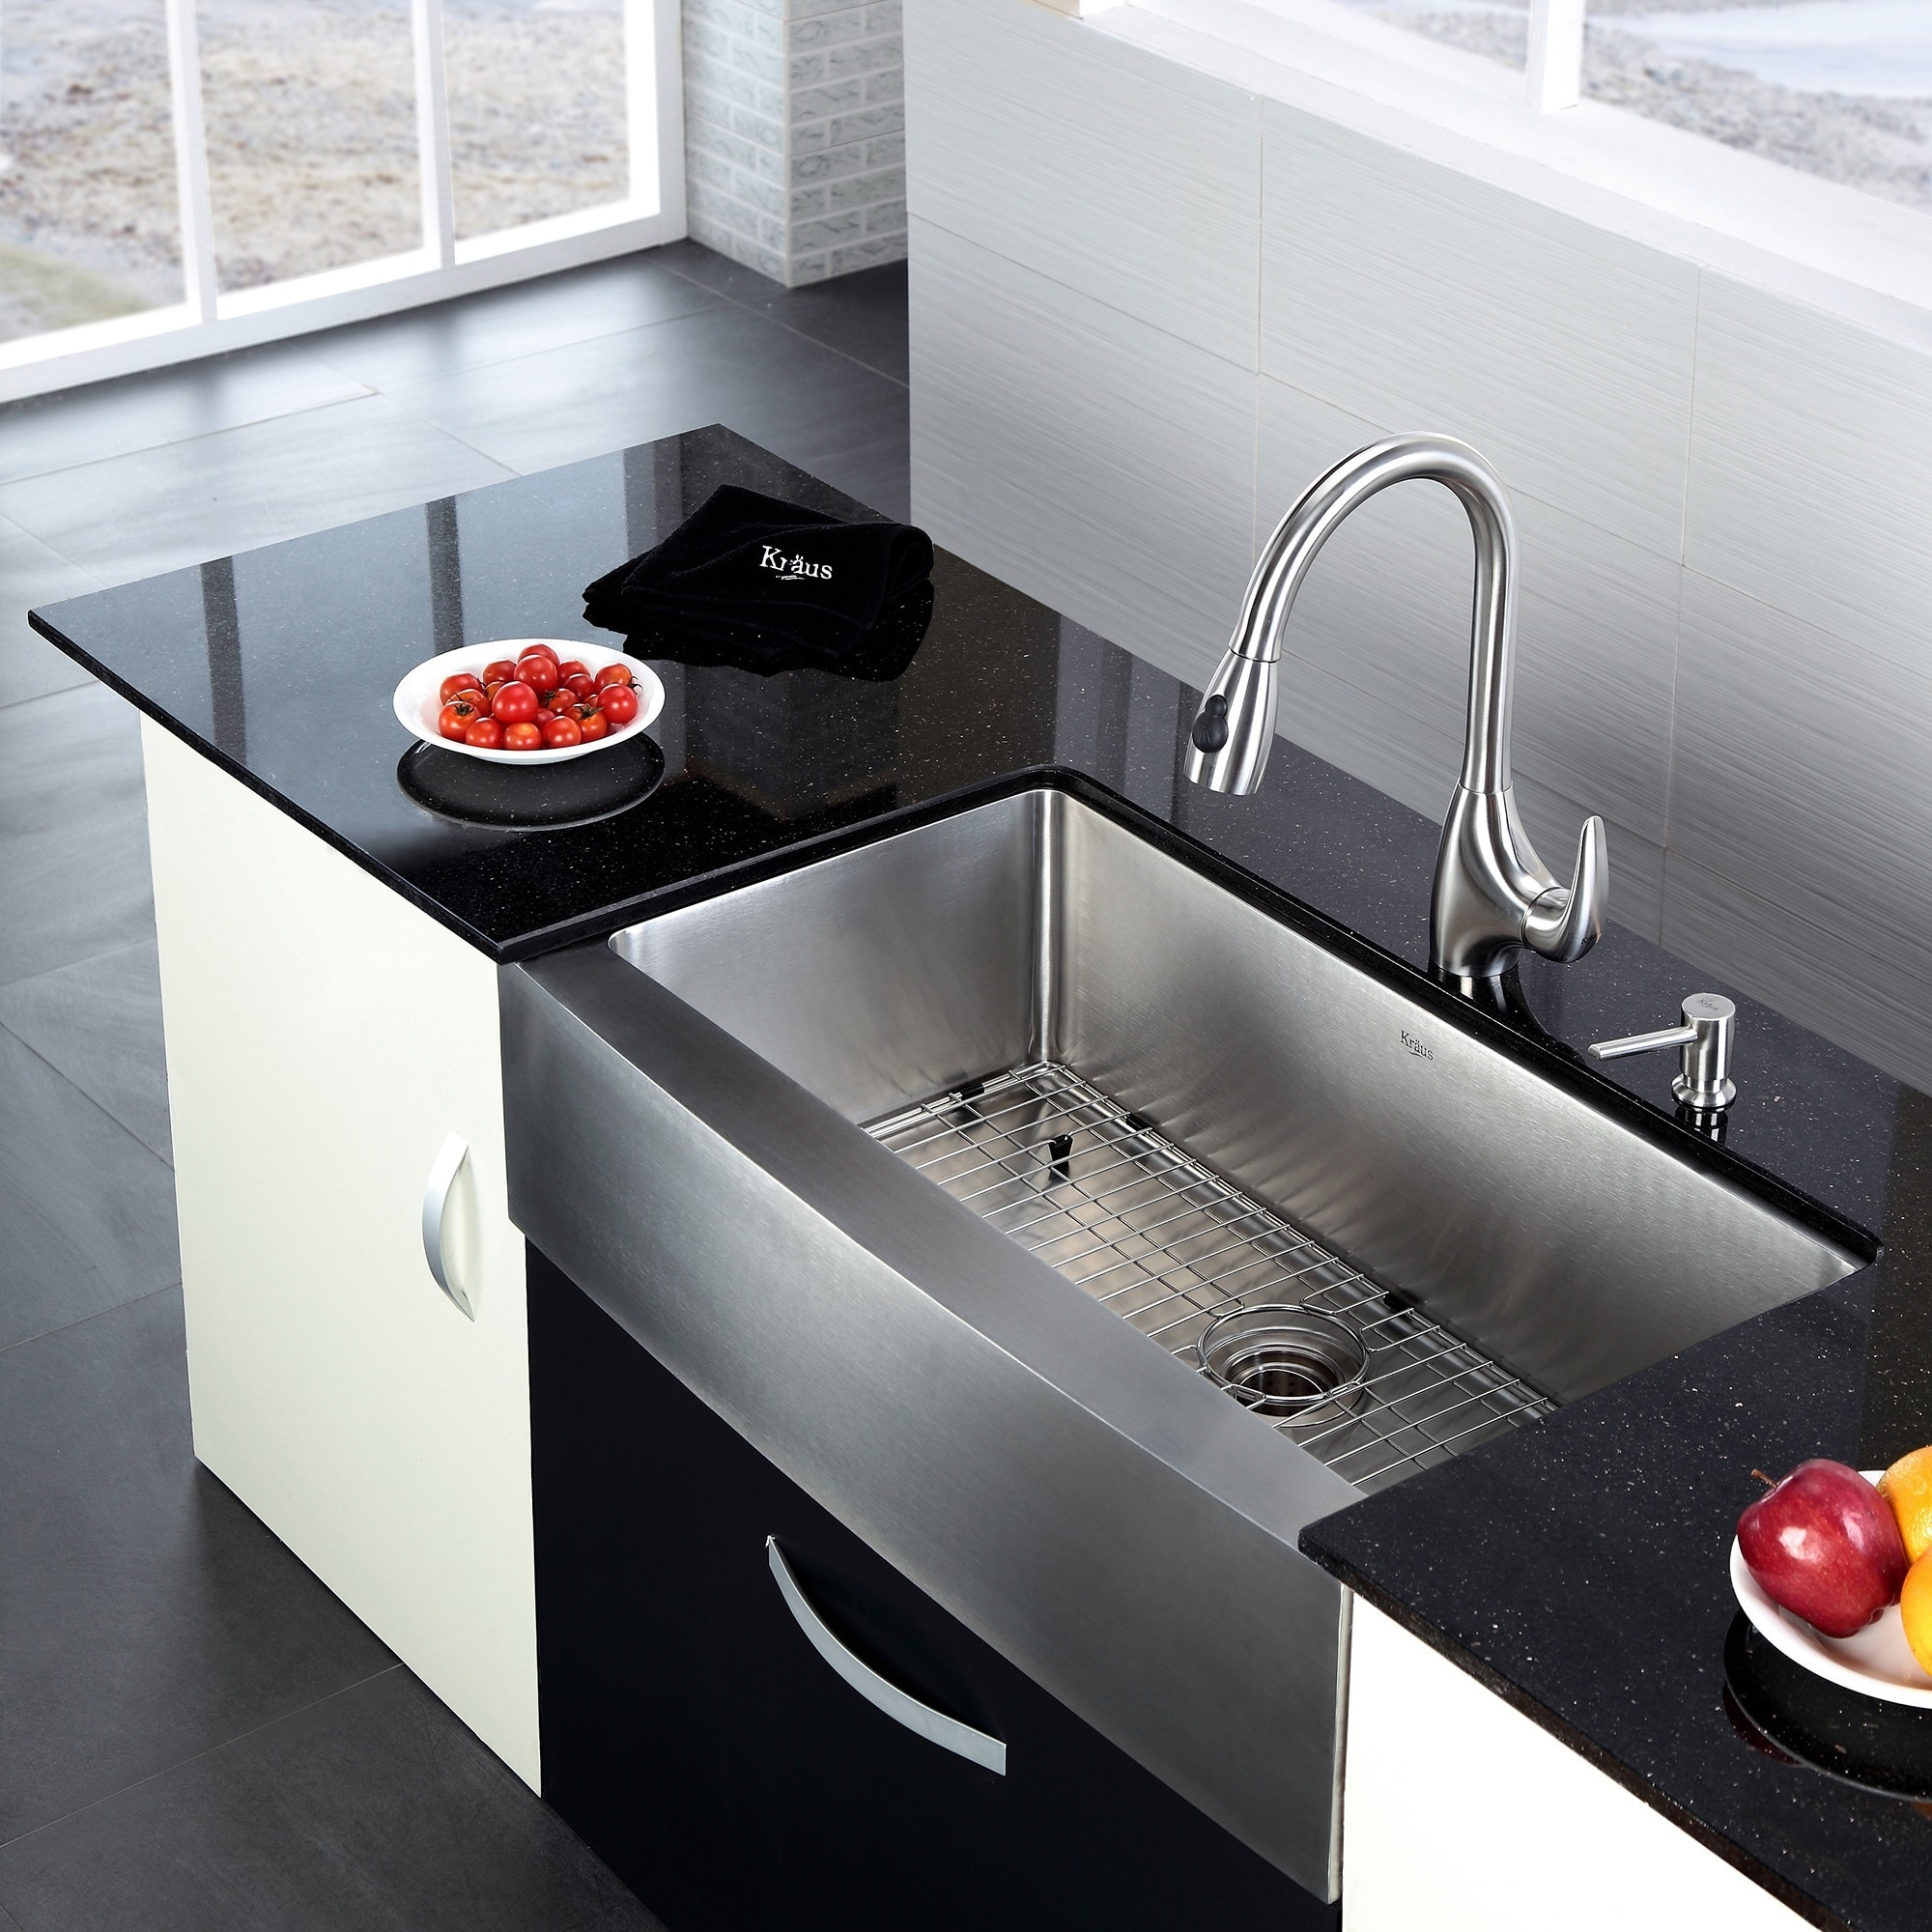 kraus 36 inch farmhouse single bowl stainless steel kitchen sink with noisedefend soundproofing   free shipping today   overstock com   12264208 kraus 36 inch farmhouse single bowl stainless steel kitchen sink      rh   overstock com